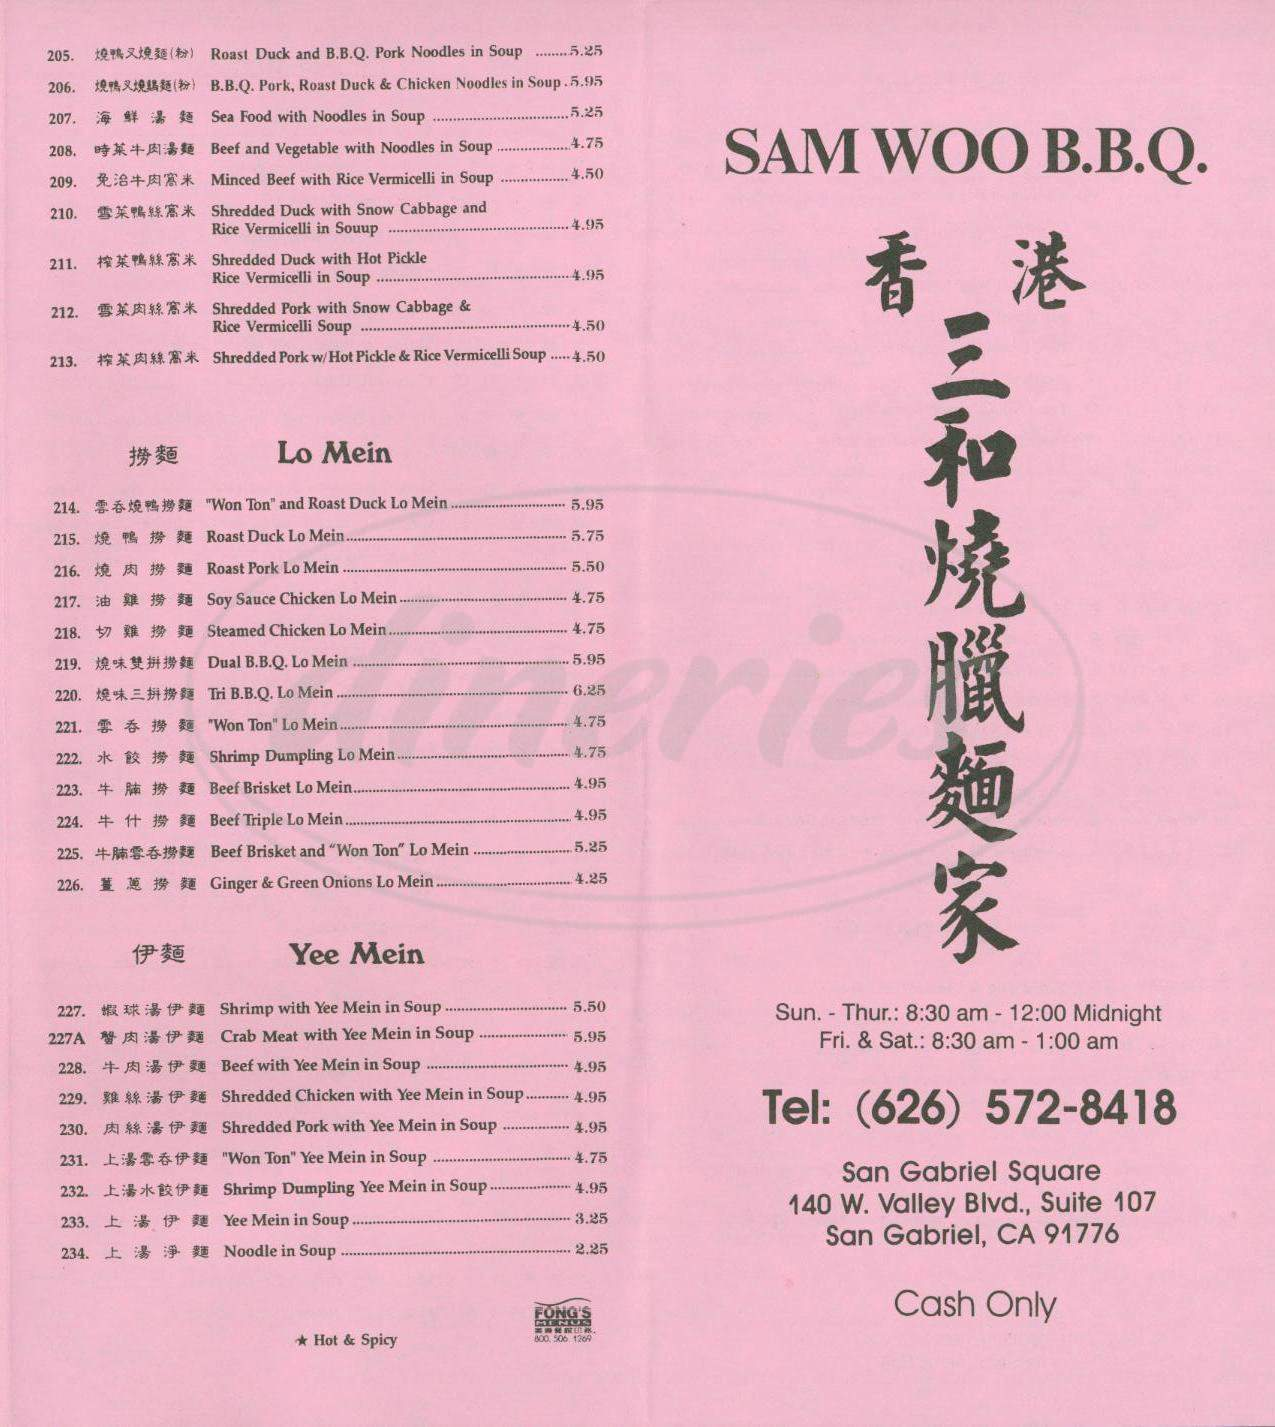 menu for Sam Woo BBQ